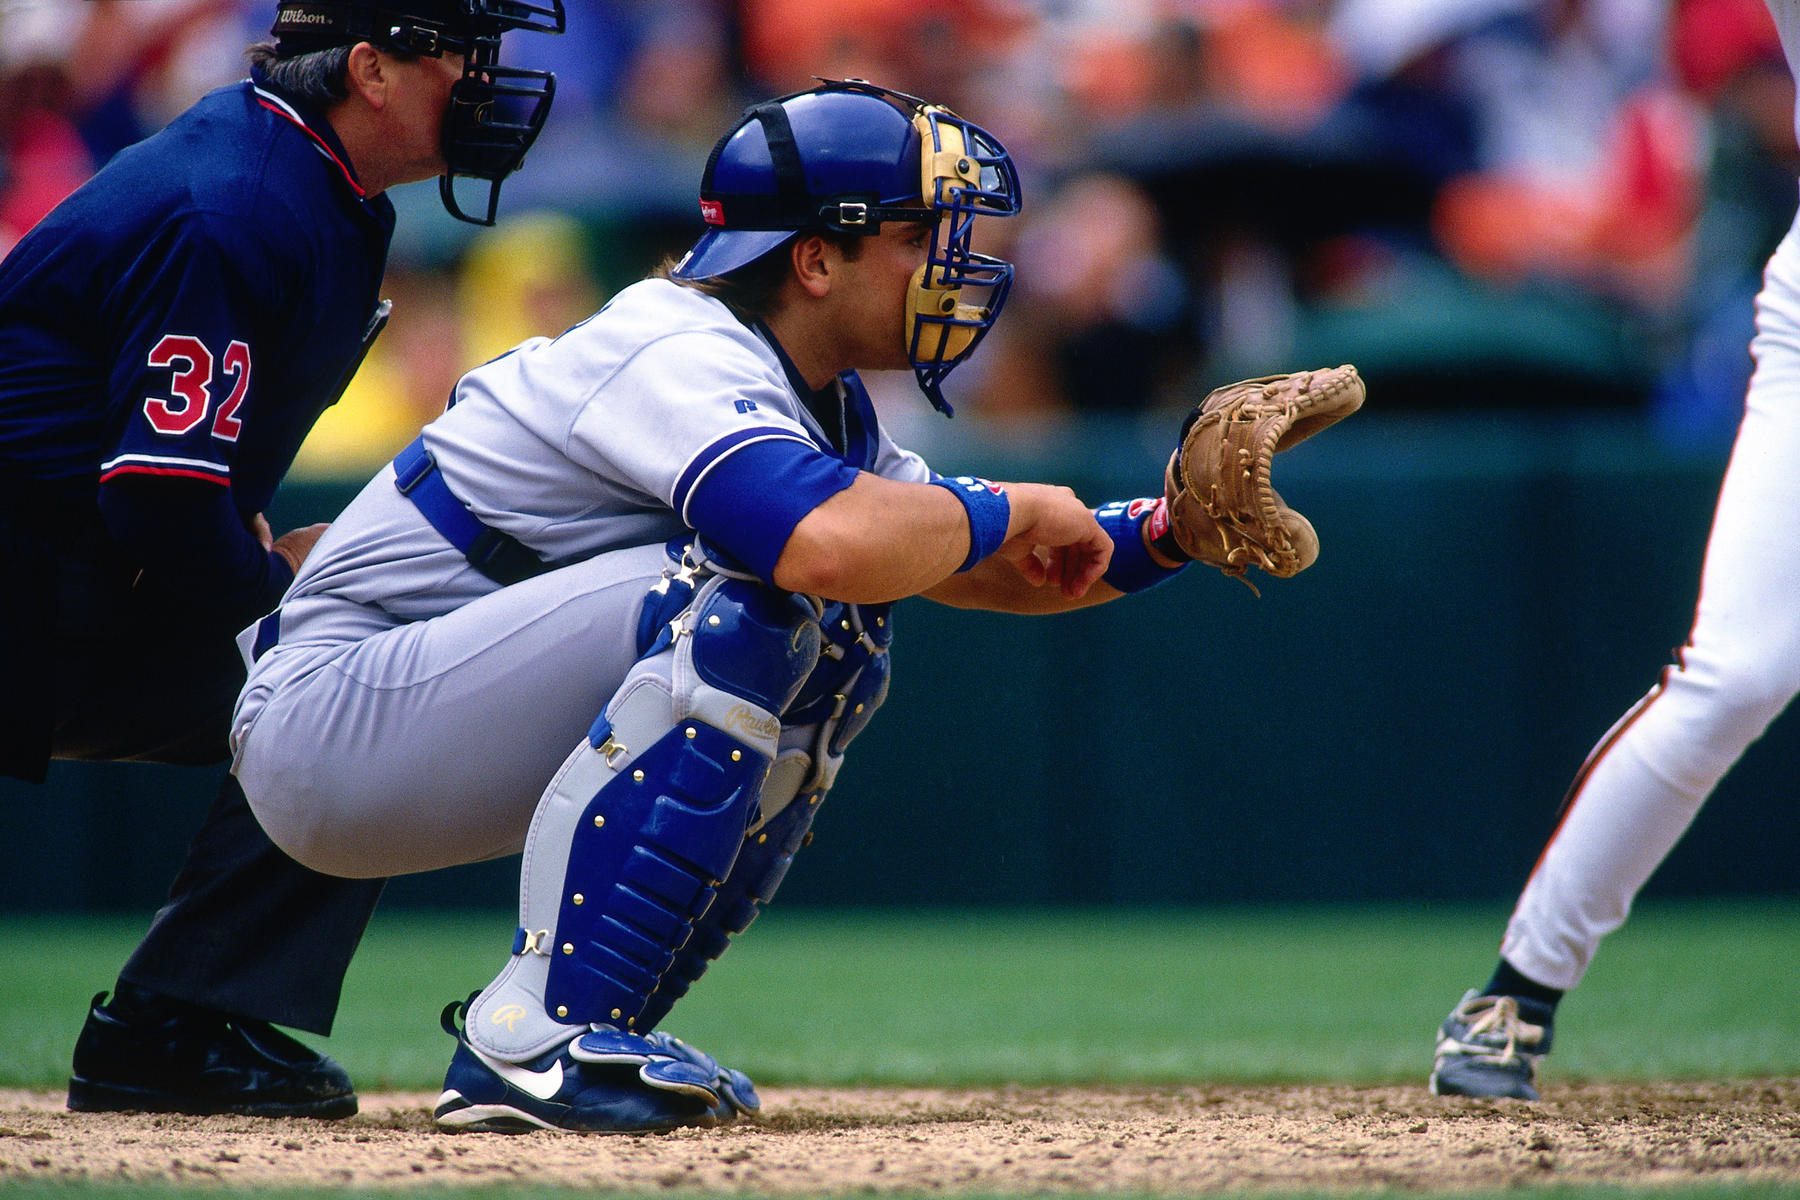 Mike Piazza of the Los Angeles Dodgers catching during a game against the San Francisco Giants in 1996. (Brad Mangin / National Baseball Hall of Fame Library)